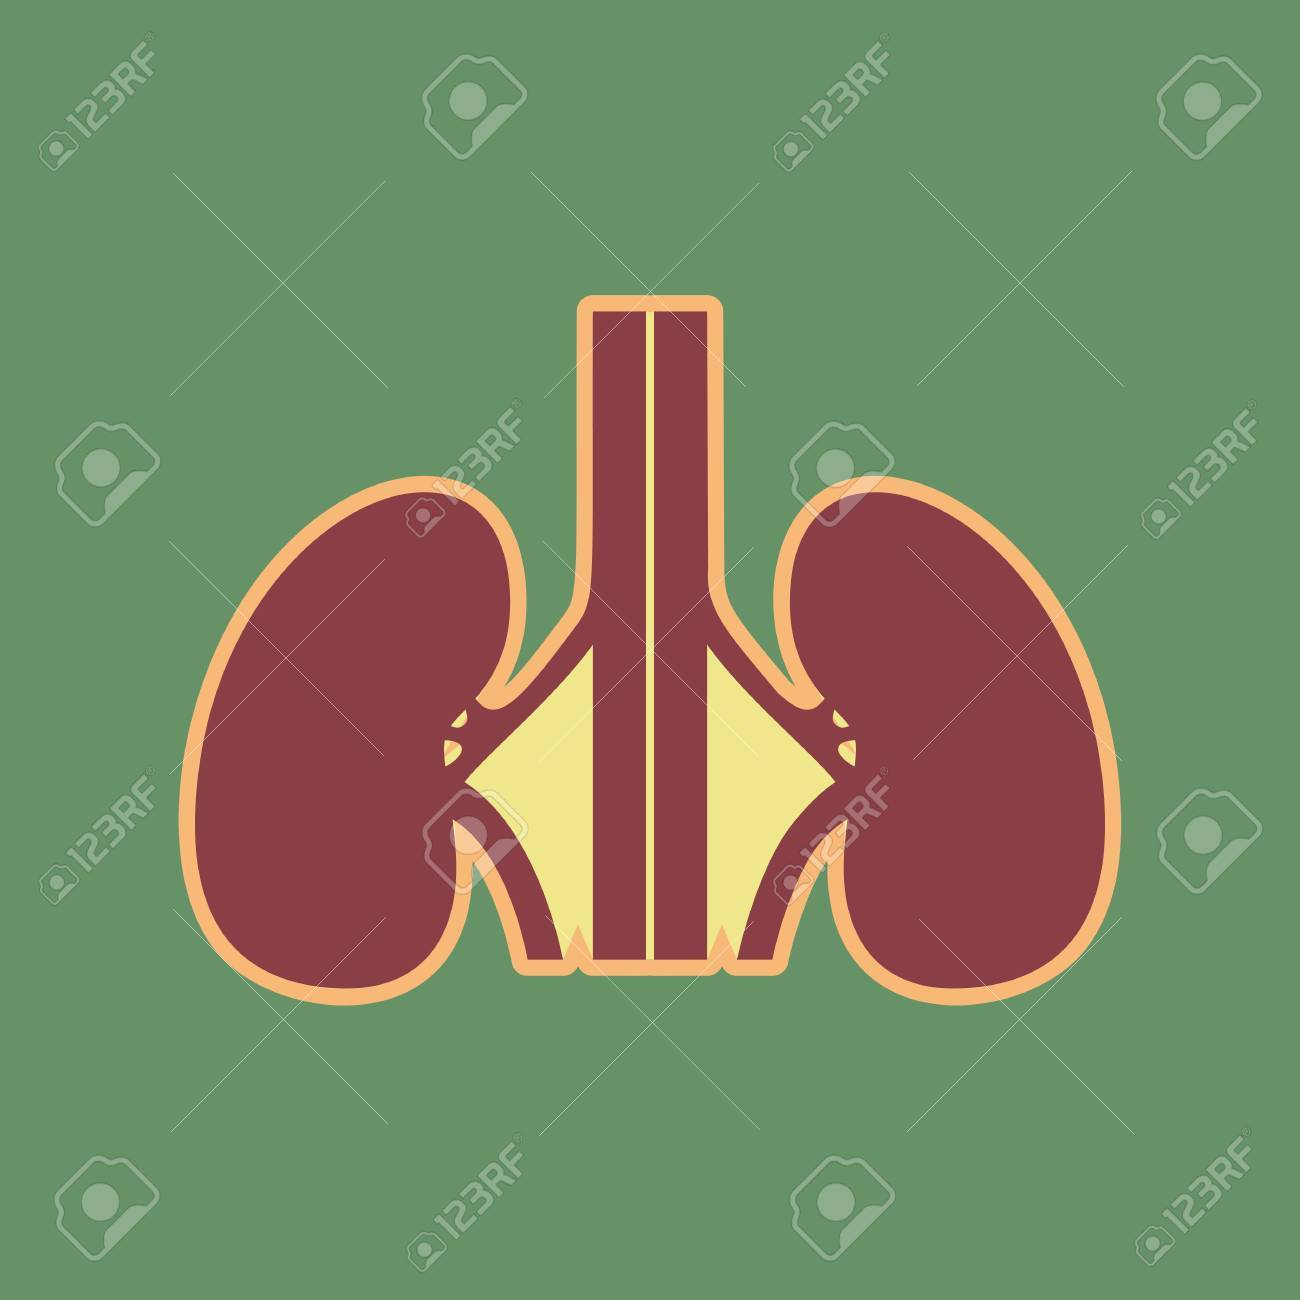 Human Anatomy Kidneys Sign Vector Cordovan Icon And Mellow Apricot Halo With Light